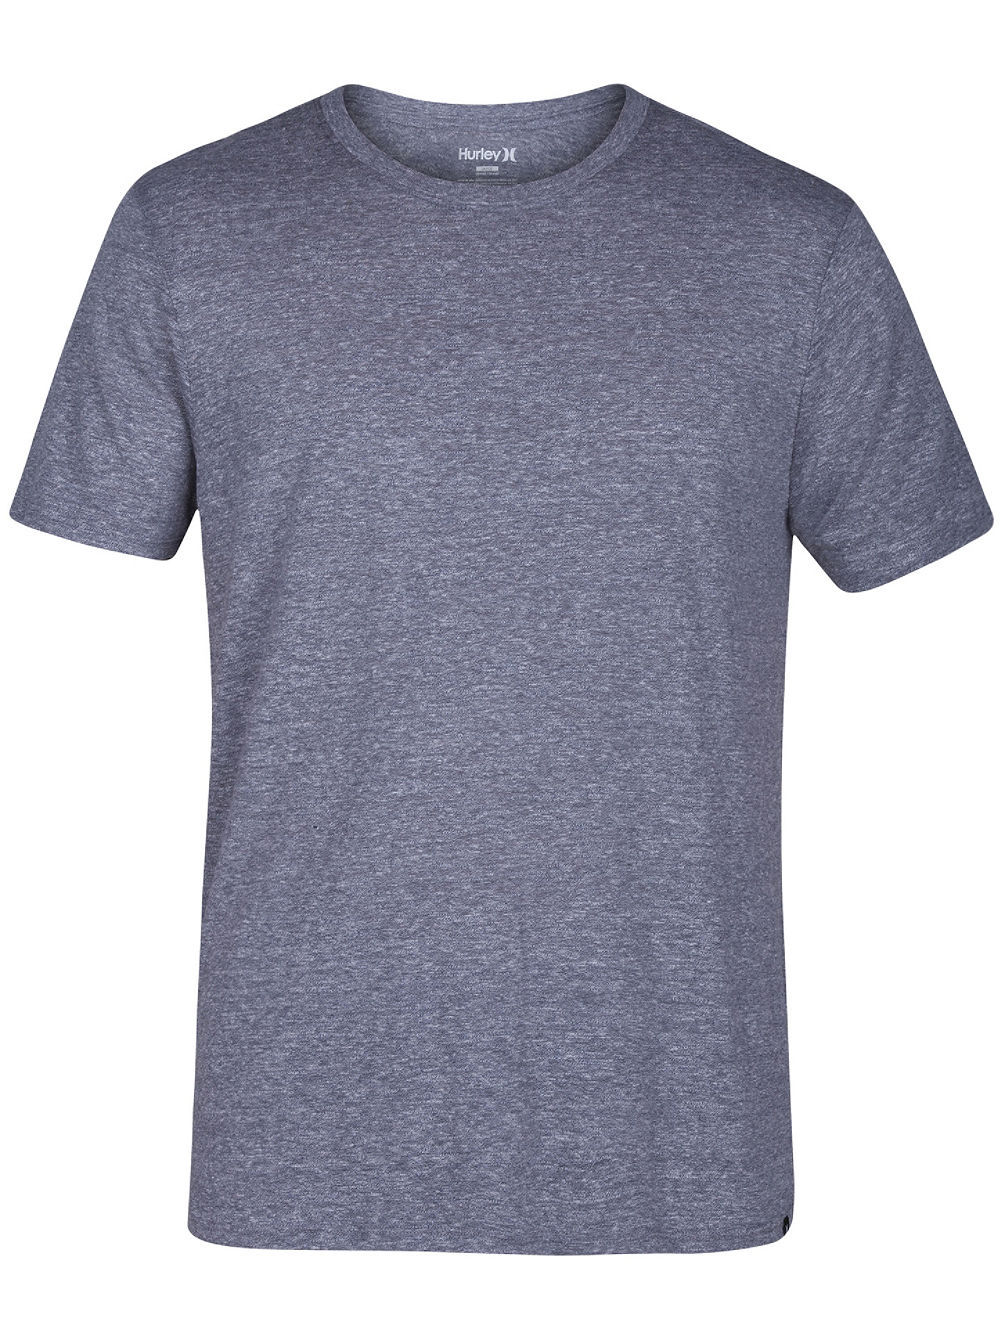 Staple Tri-Blend Crew T-Shirt